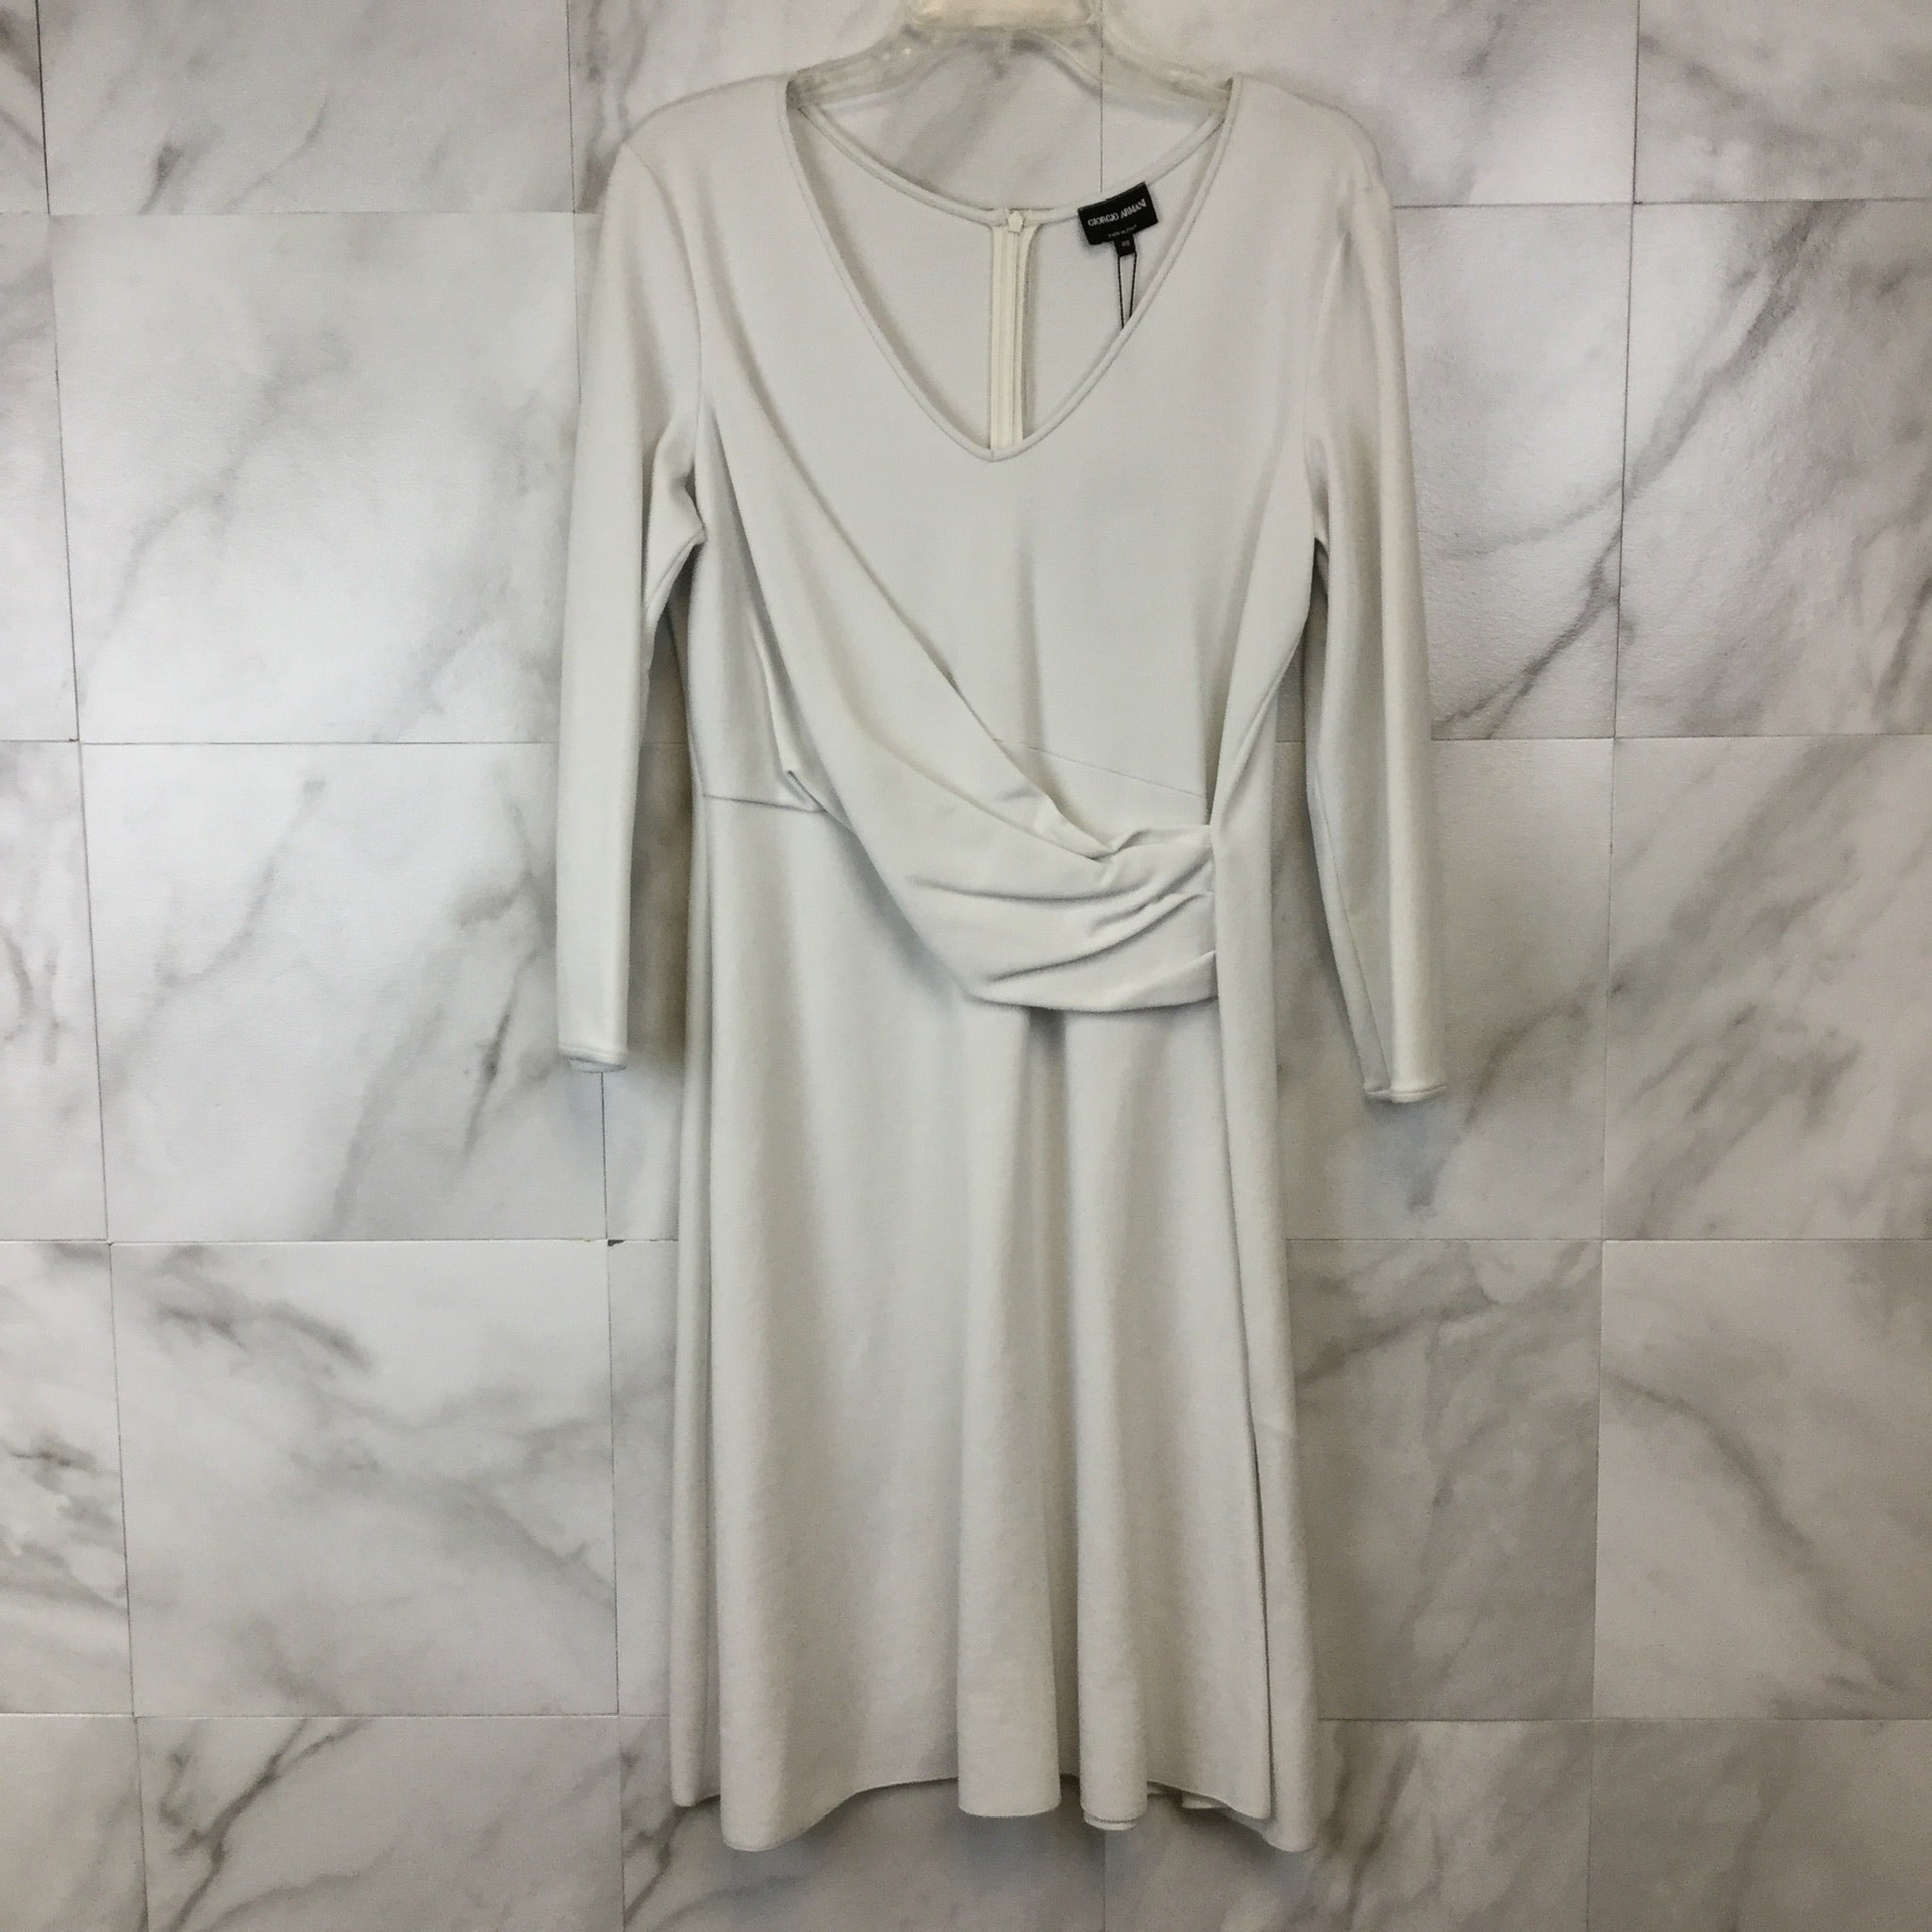 Giorgio Armani Faux Wrap Dress - size 14